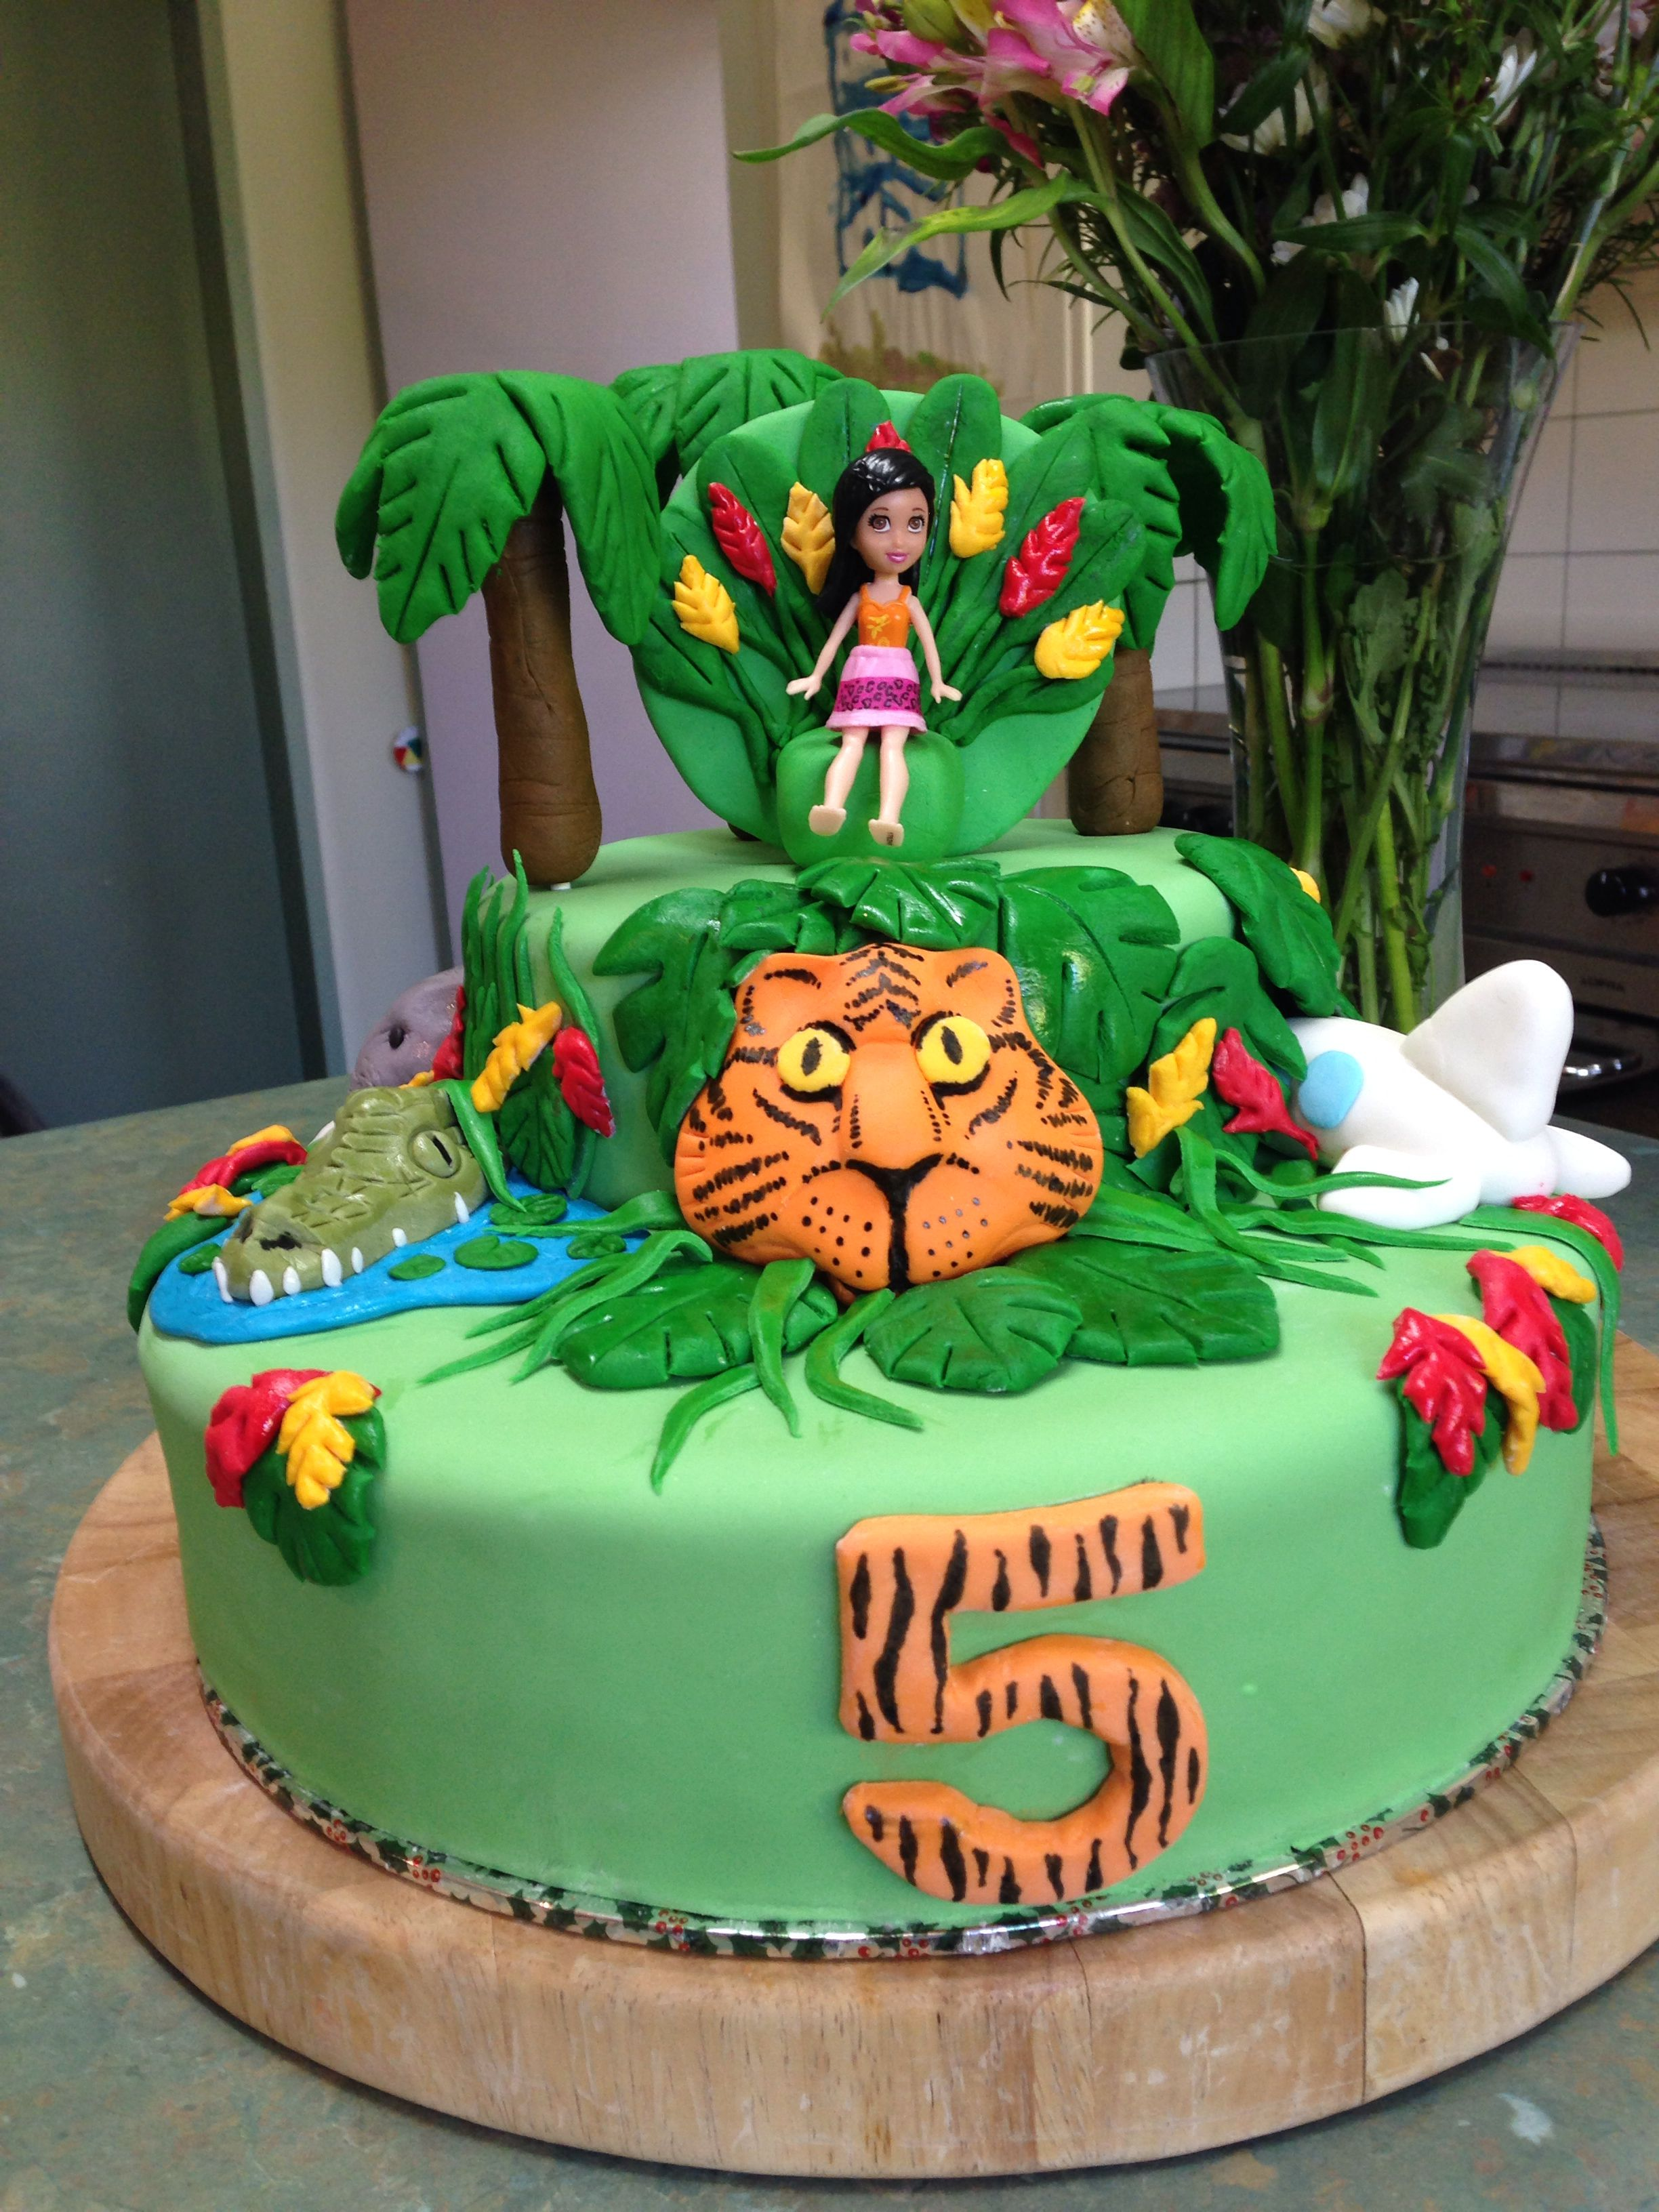 Katy Perry Roar Cake Caramel Mud Top And White Mud For